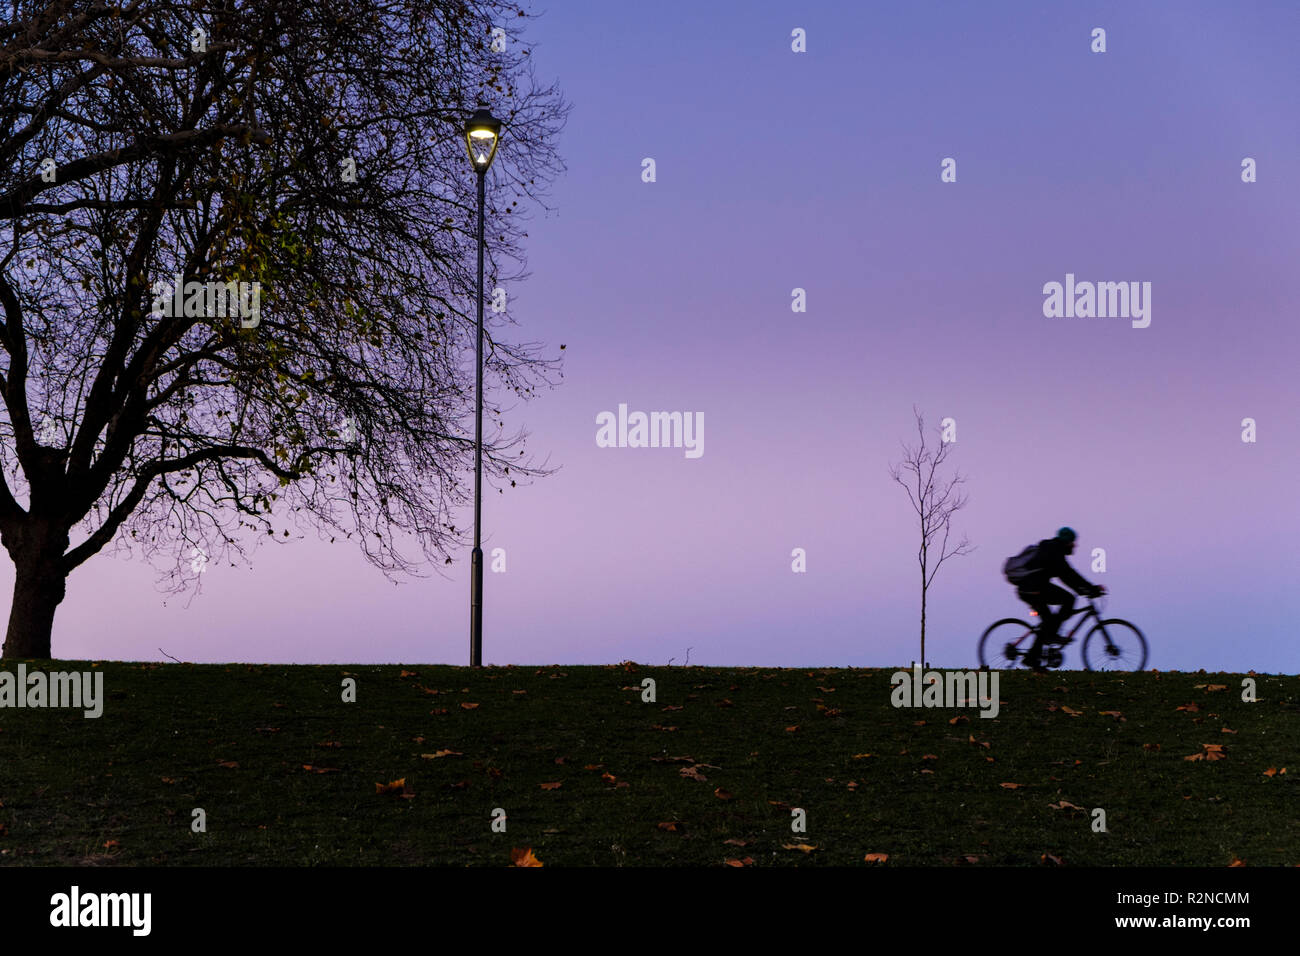 Cyclist riding past trees and a streetlamp at the edge of a park at night, Nottingham, England, UK - Stock Image